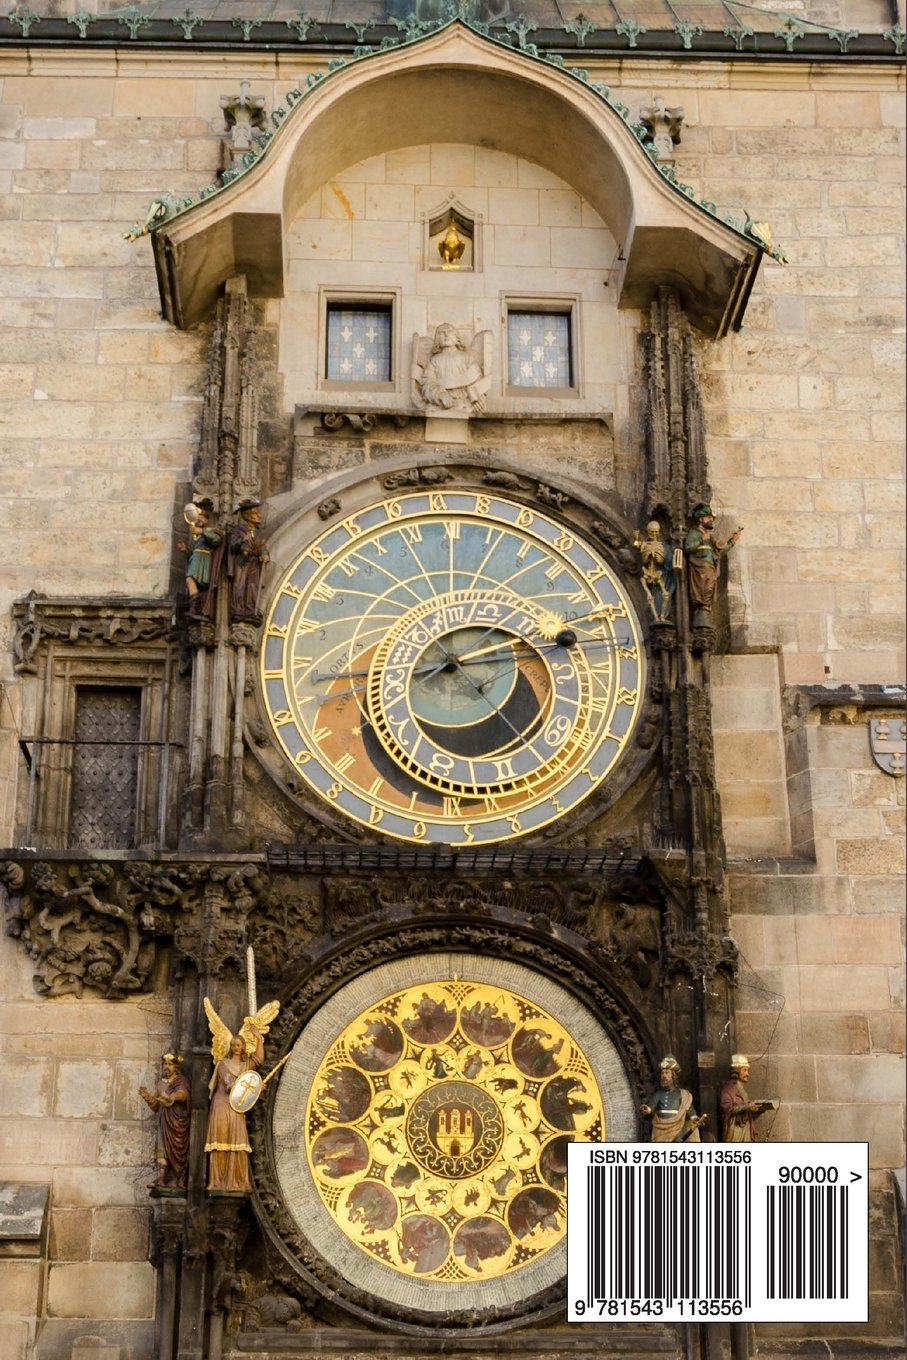 Astronomical Clock in Prague, Czech Republic Journal: A Blank Lined Journal For Writing and Note Taking Paperback – February 13, 2017